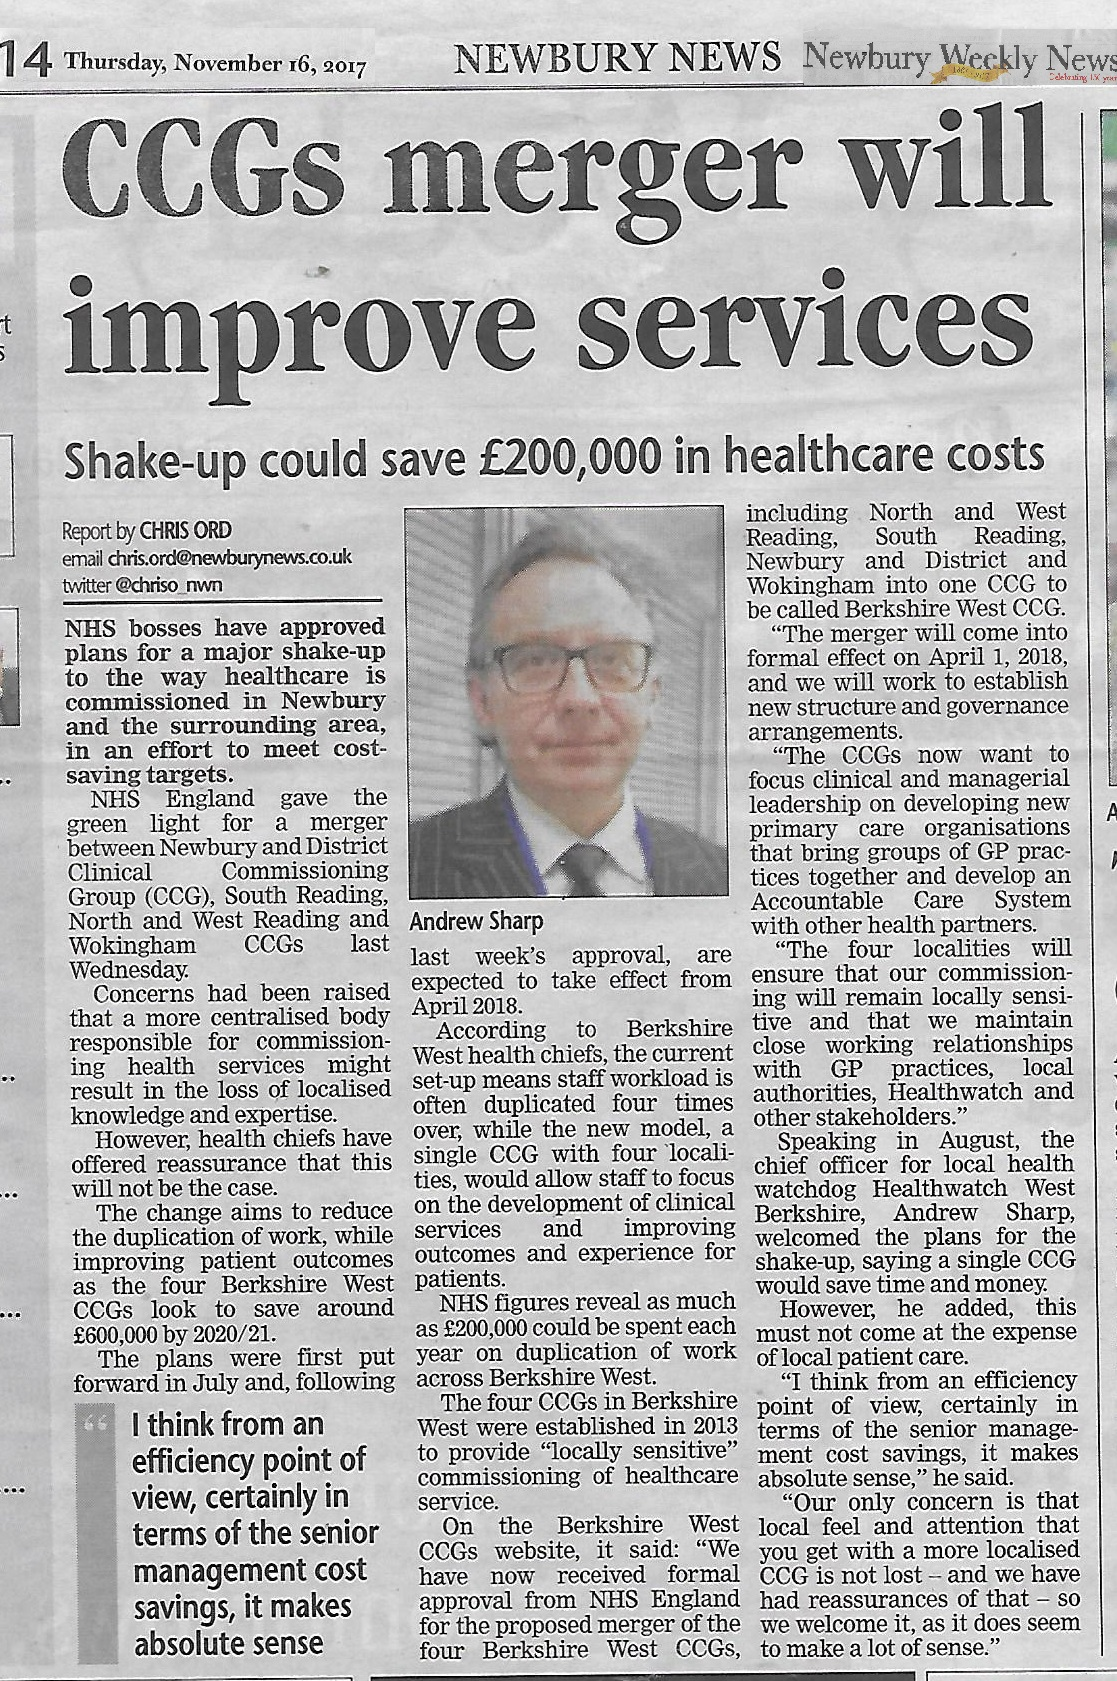 CCG merger shake up improve services